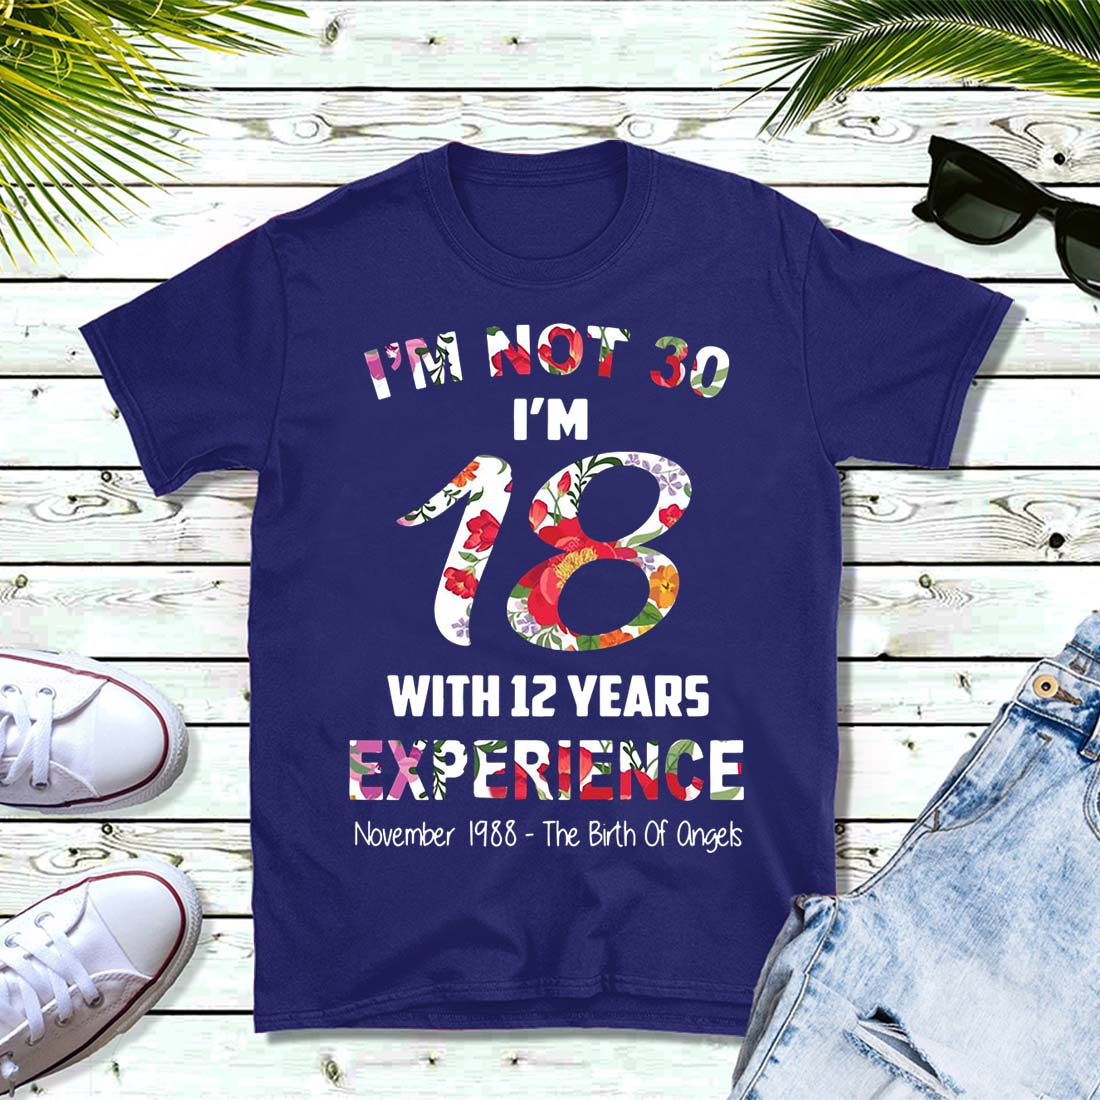 I'm not 30 I'm 18 with 12 years experience November 1988 shirt